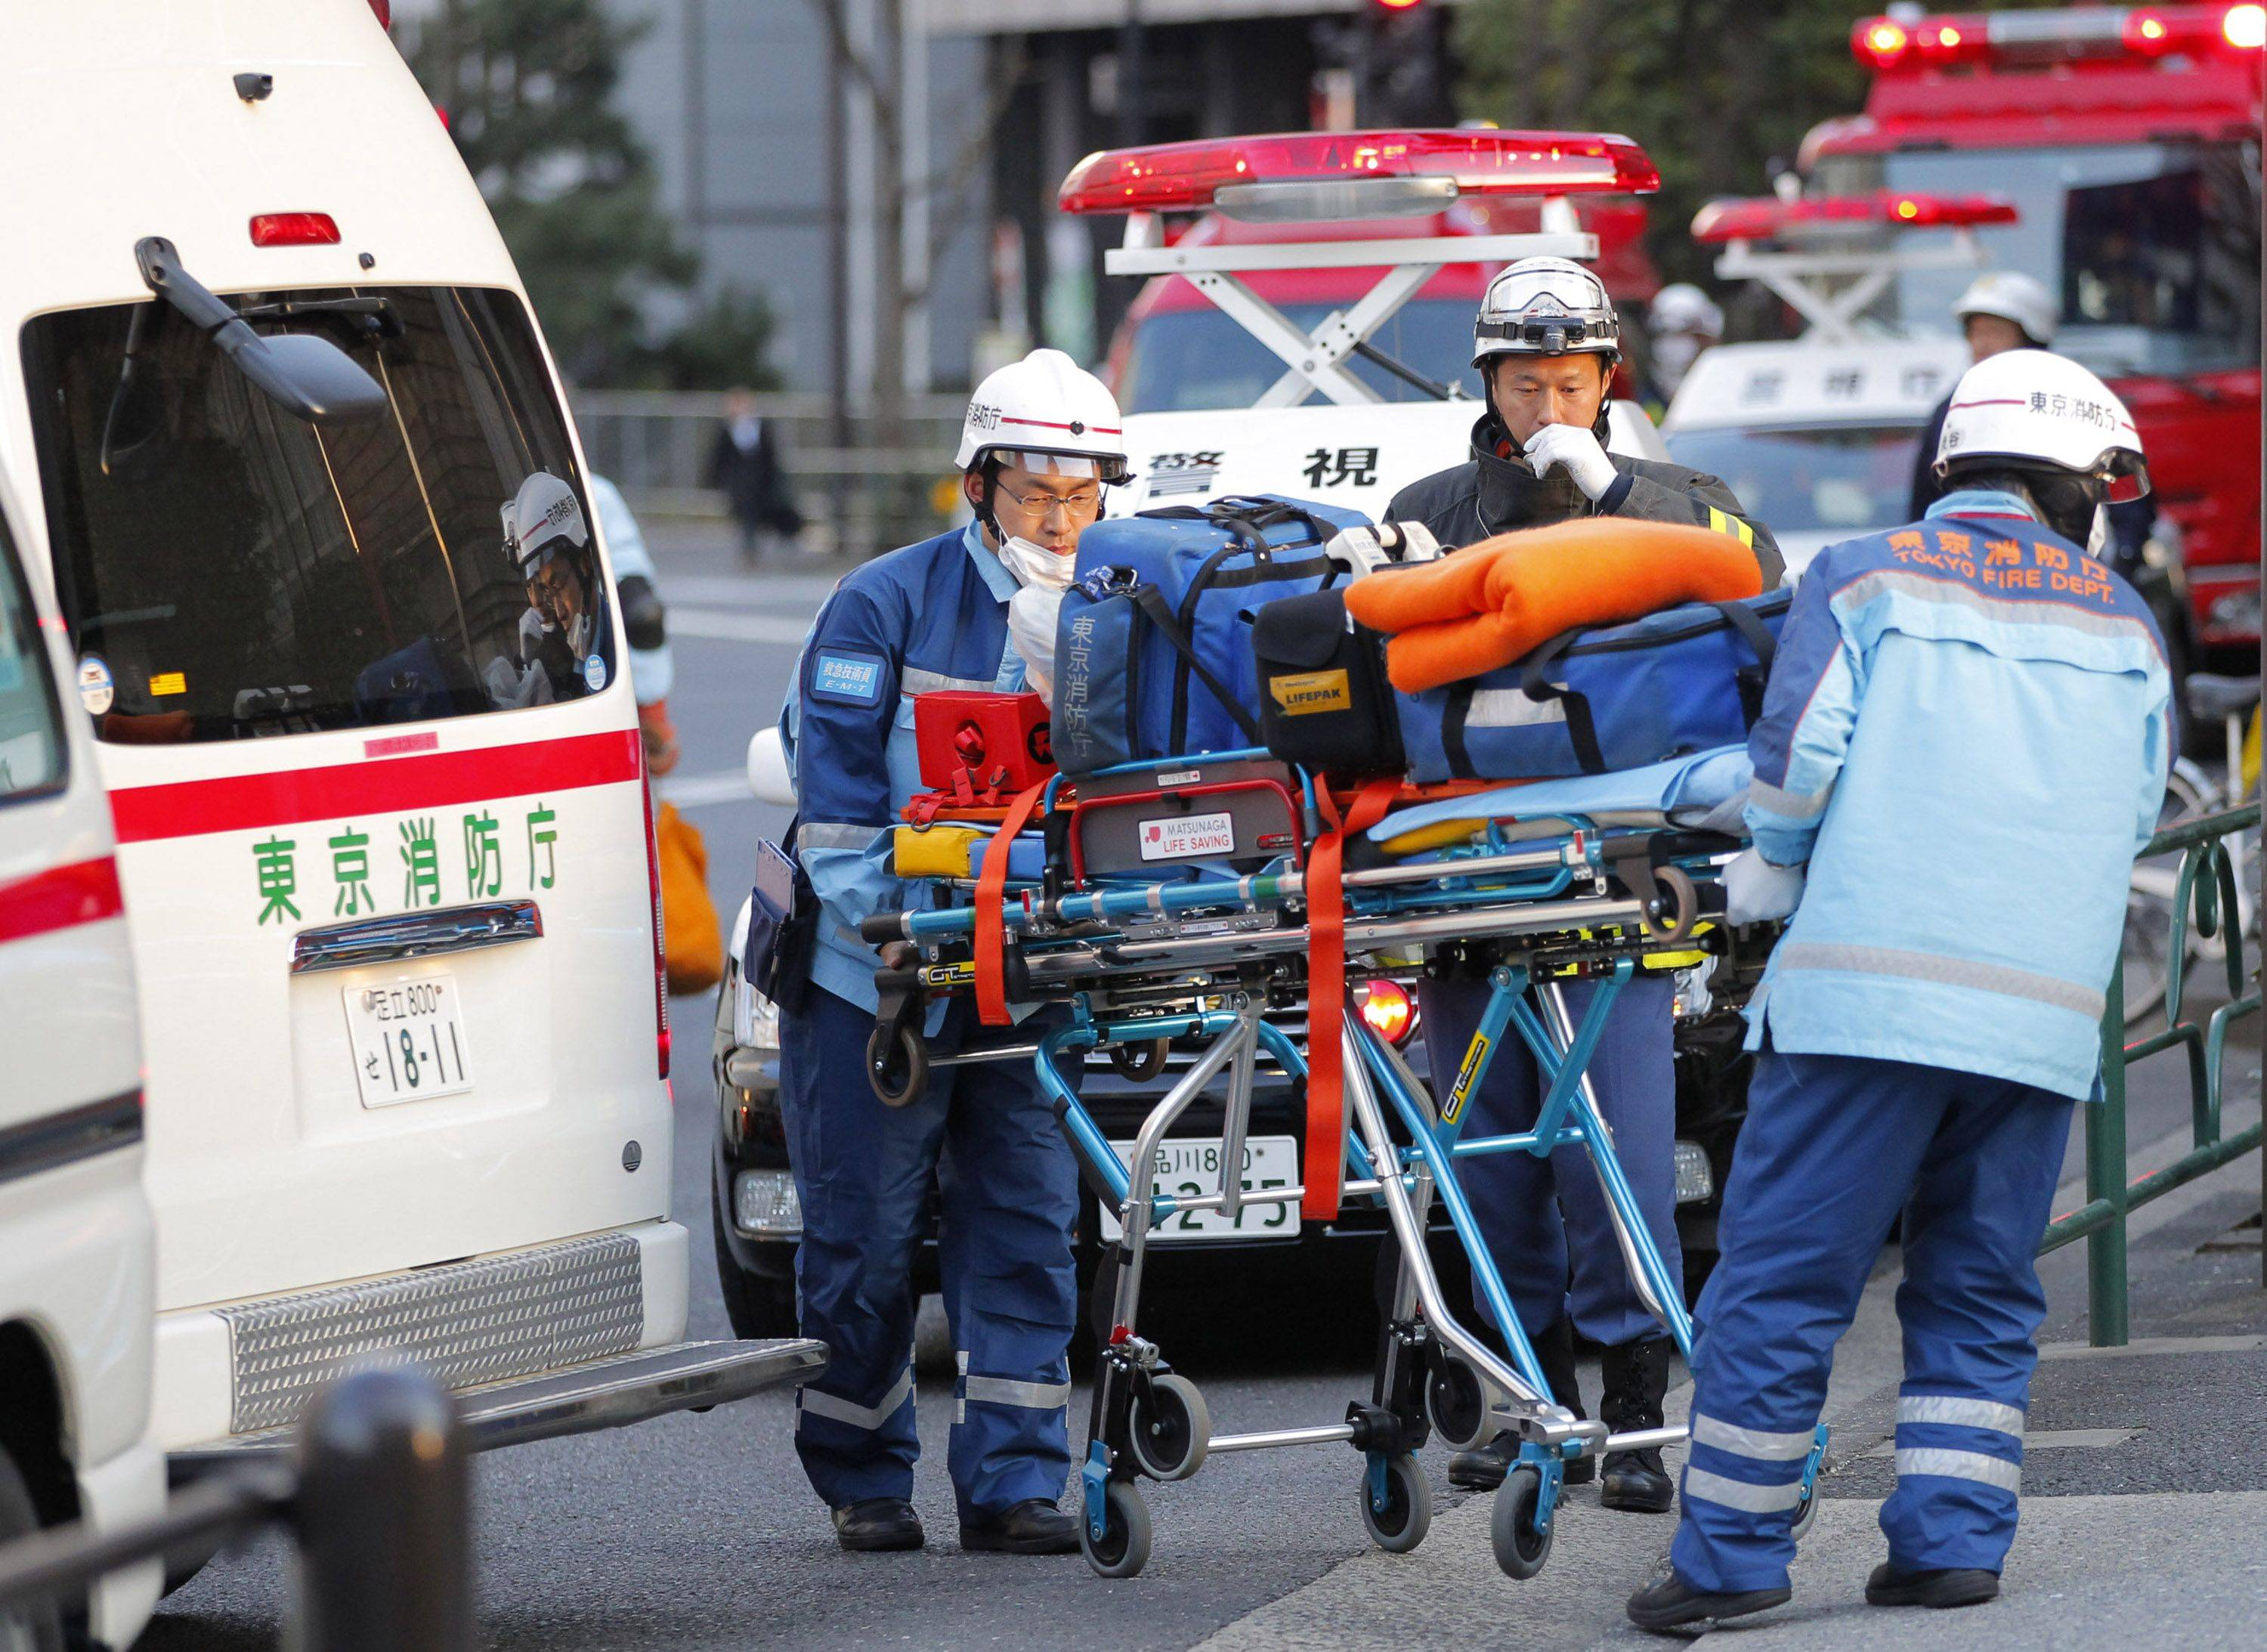 Tokyo Fire Department rescue workers arrive at Kudan Kaikan in Tokyo as local media said its ceiling was damaged after a strong earthquake and injured people inside the hall Friday.